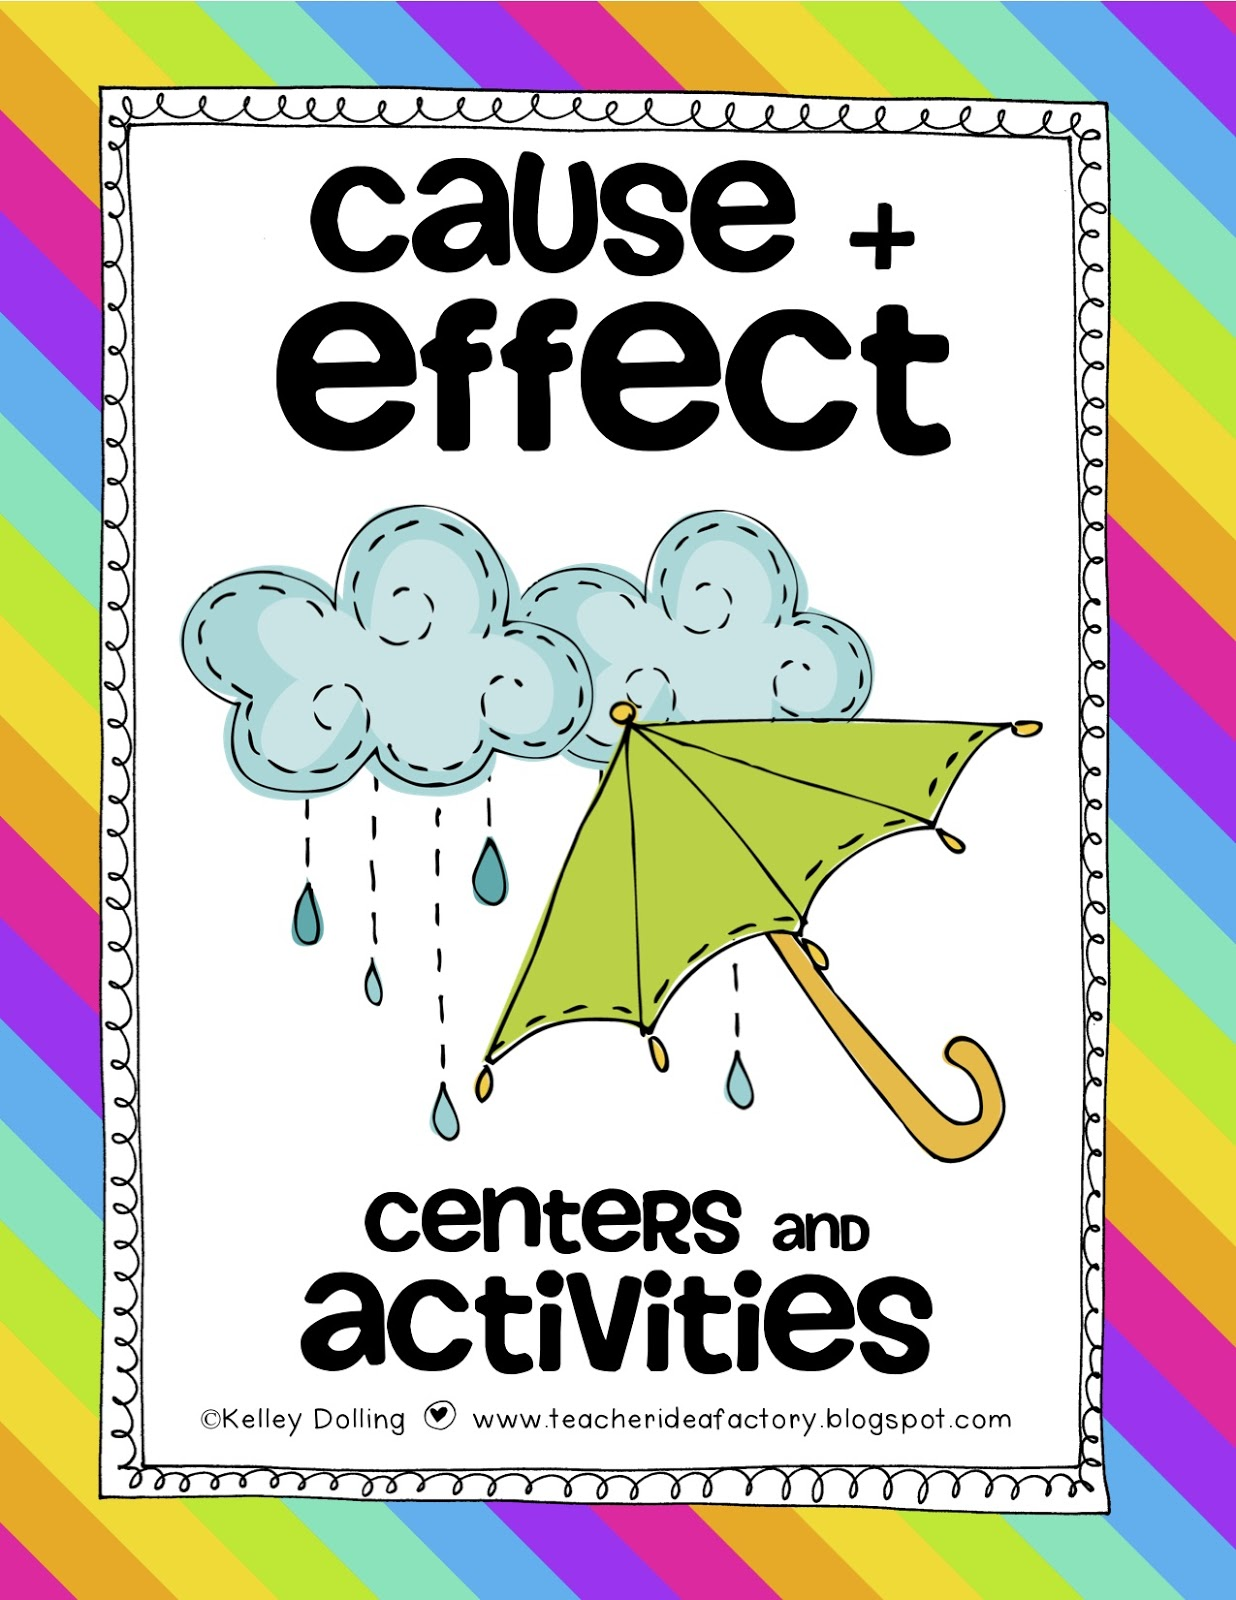 ITS FOR A GOOD CAUSE AND EFFECT Teacher Idea Factory – Cause and Effect Kindergarten Worksheets